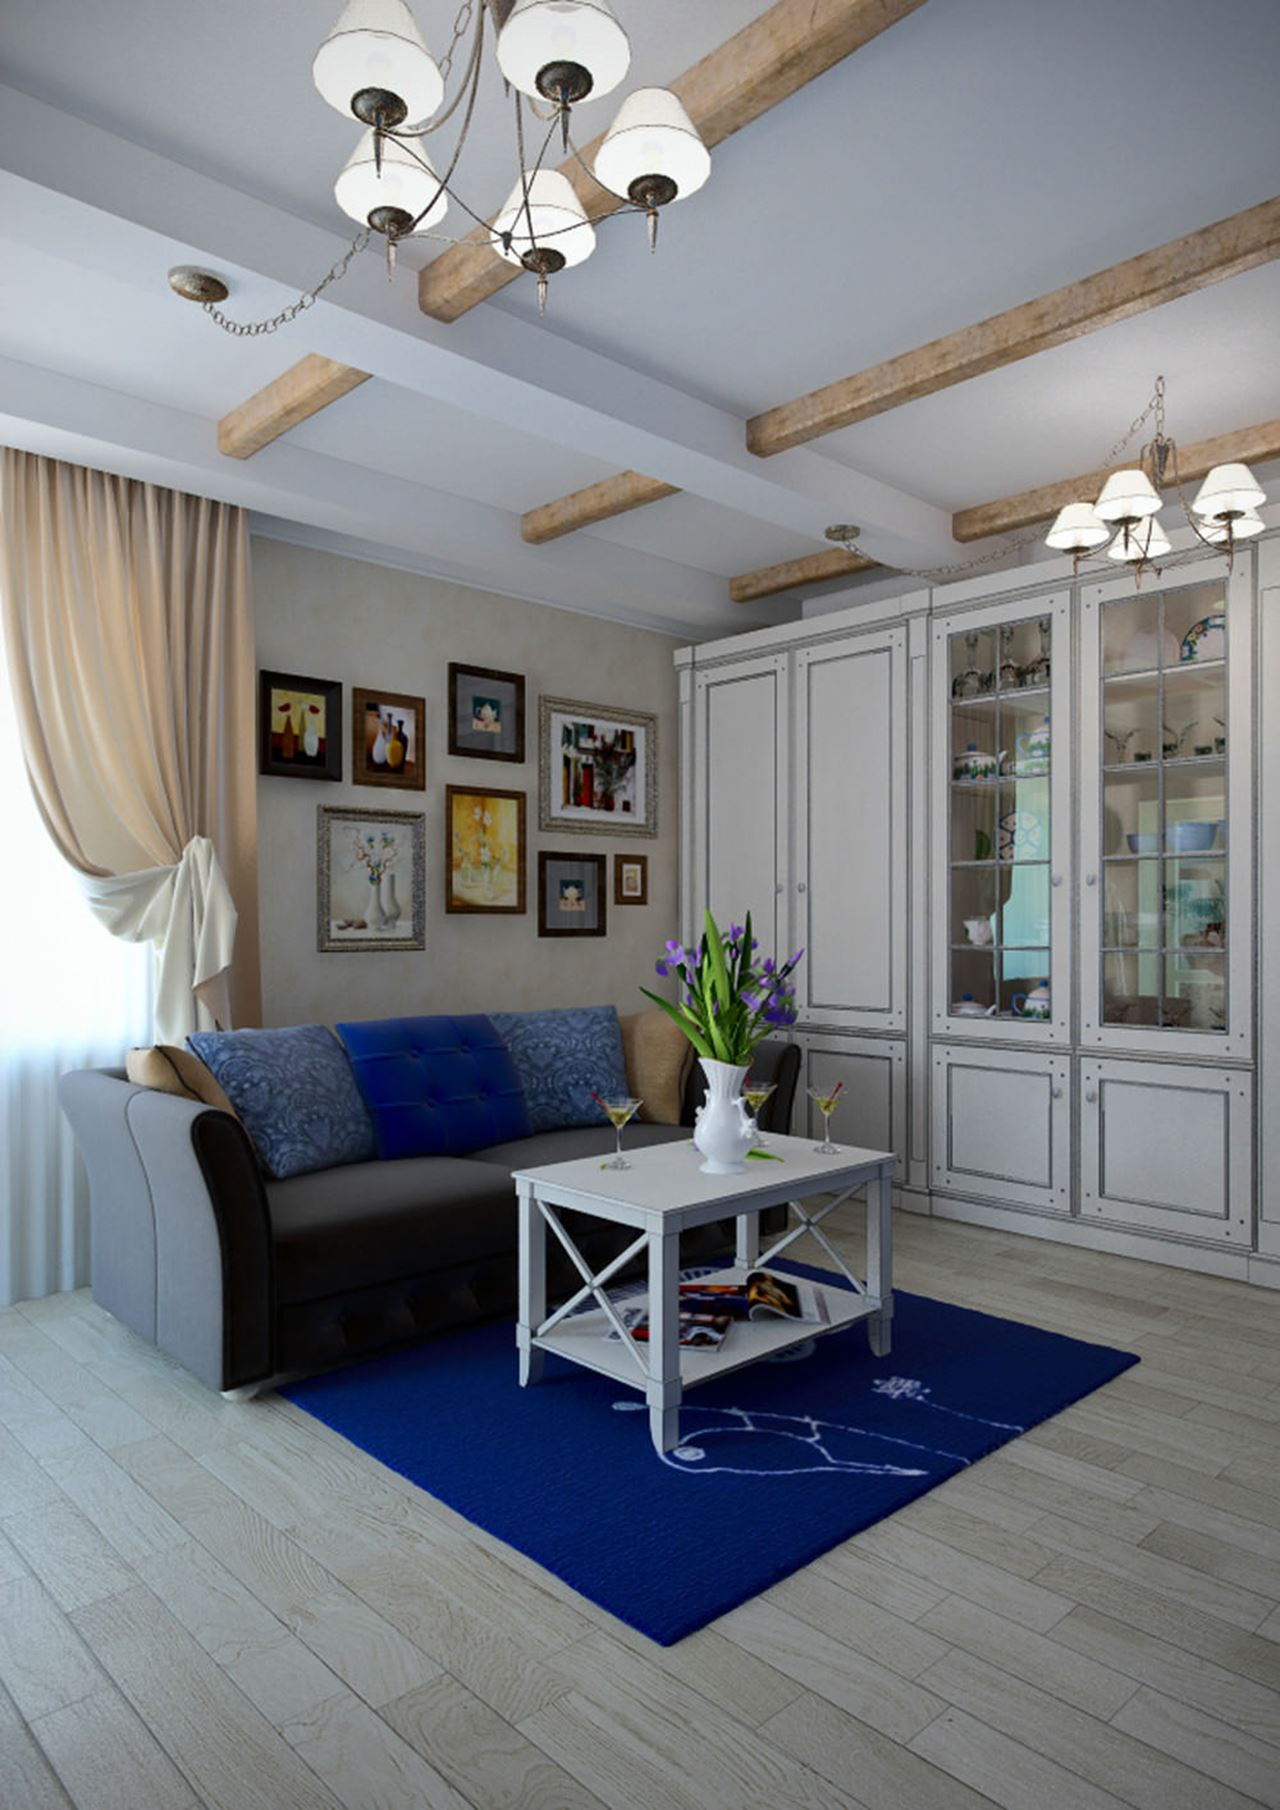 Apartment interior design in the provence style for Apartment design styles